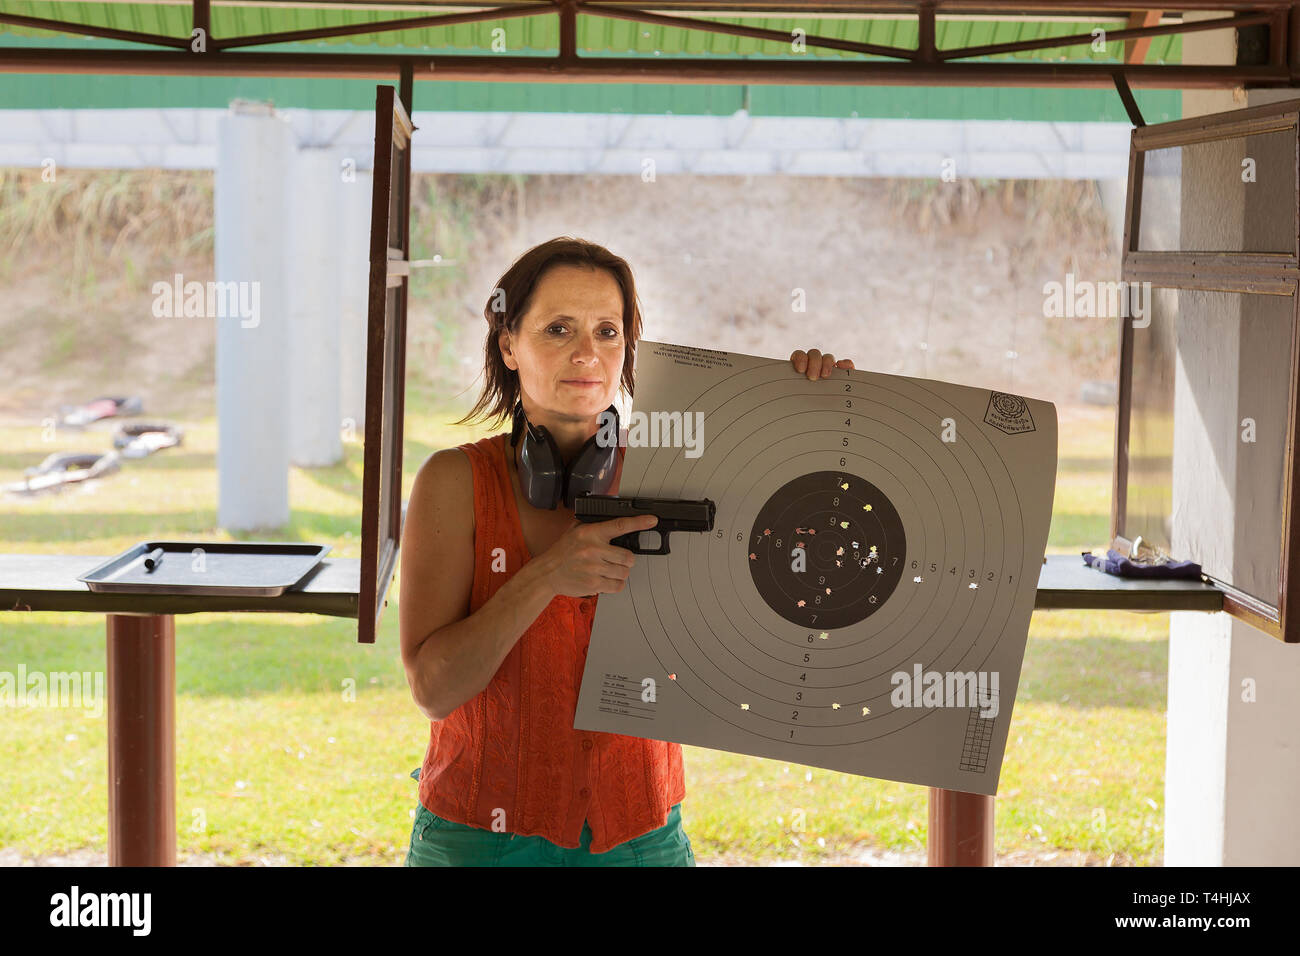 A woman at a shooting range with gun and target - Stock Image